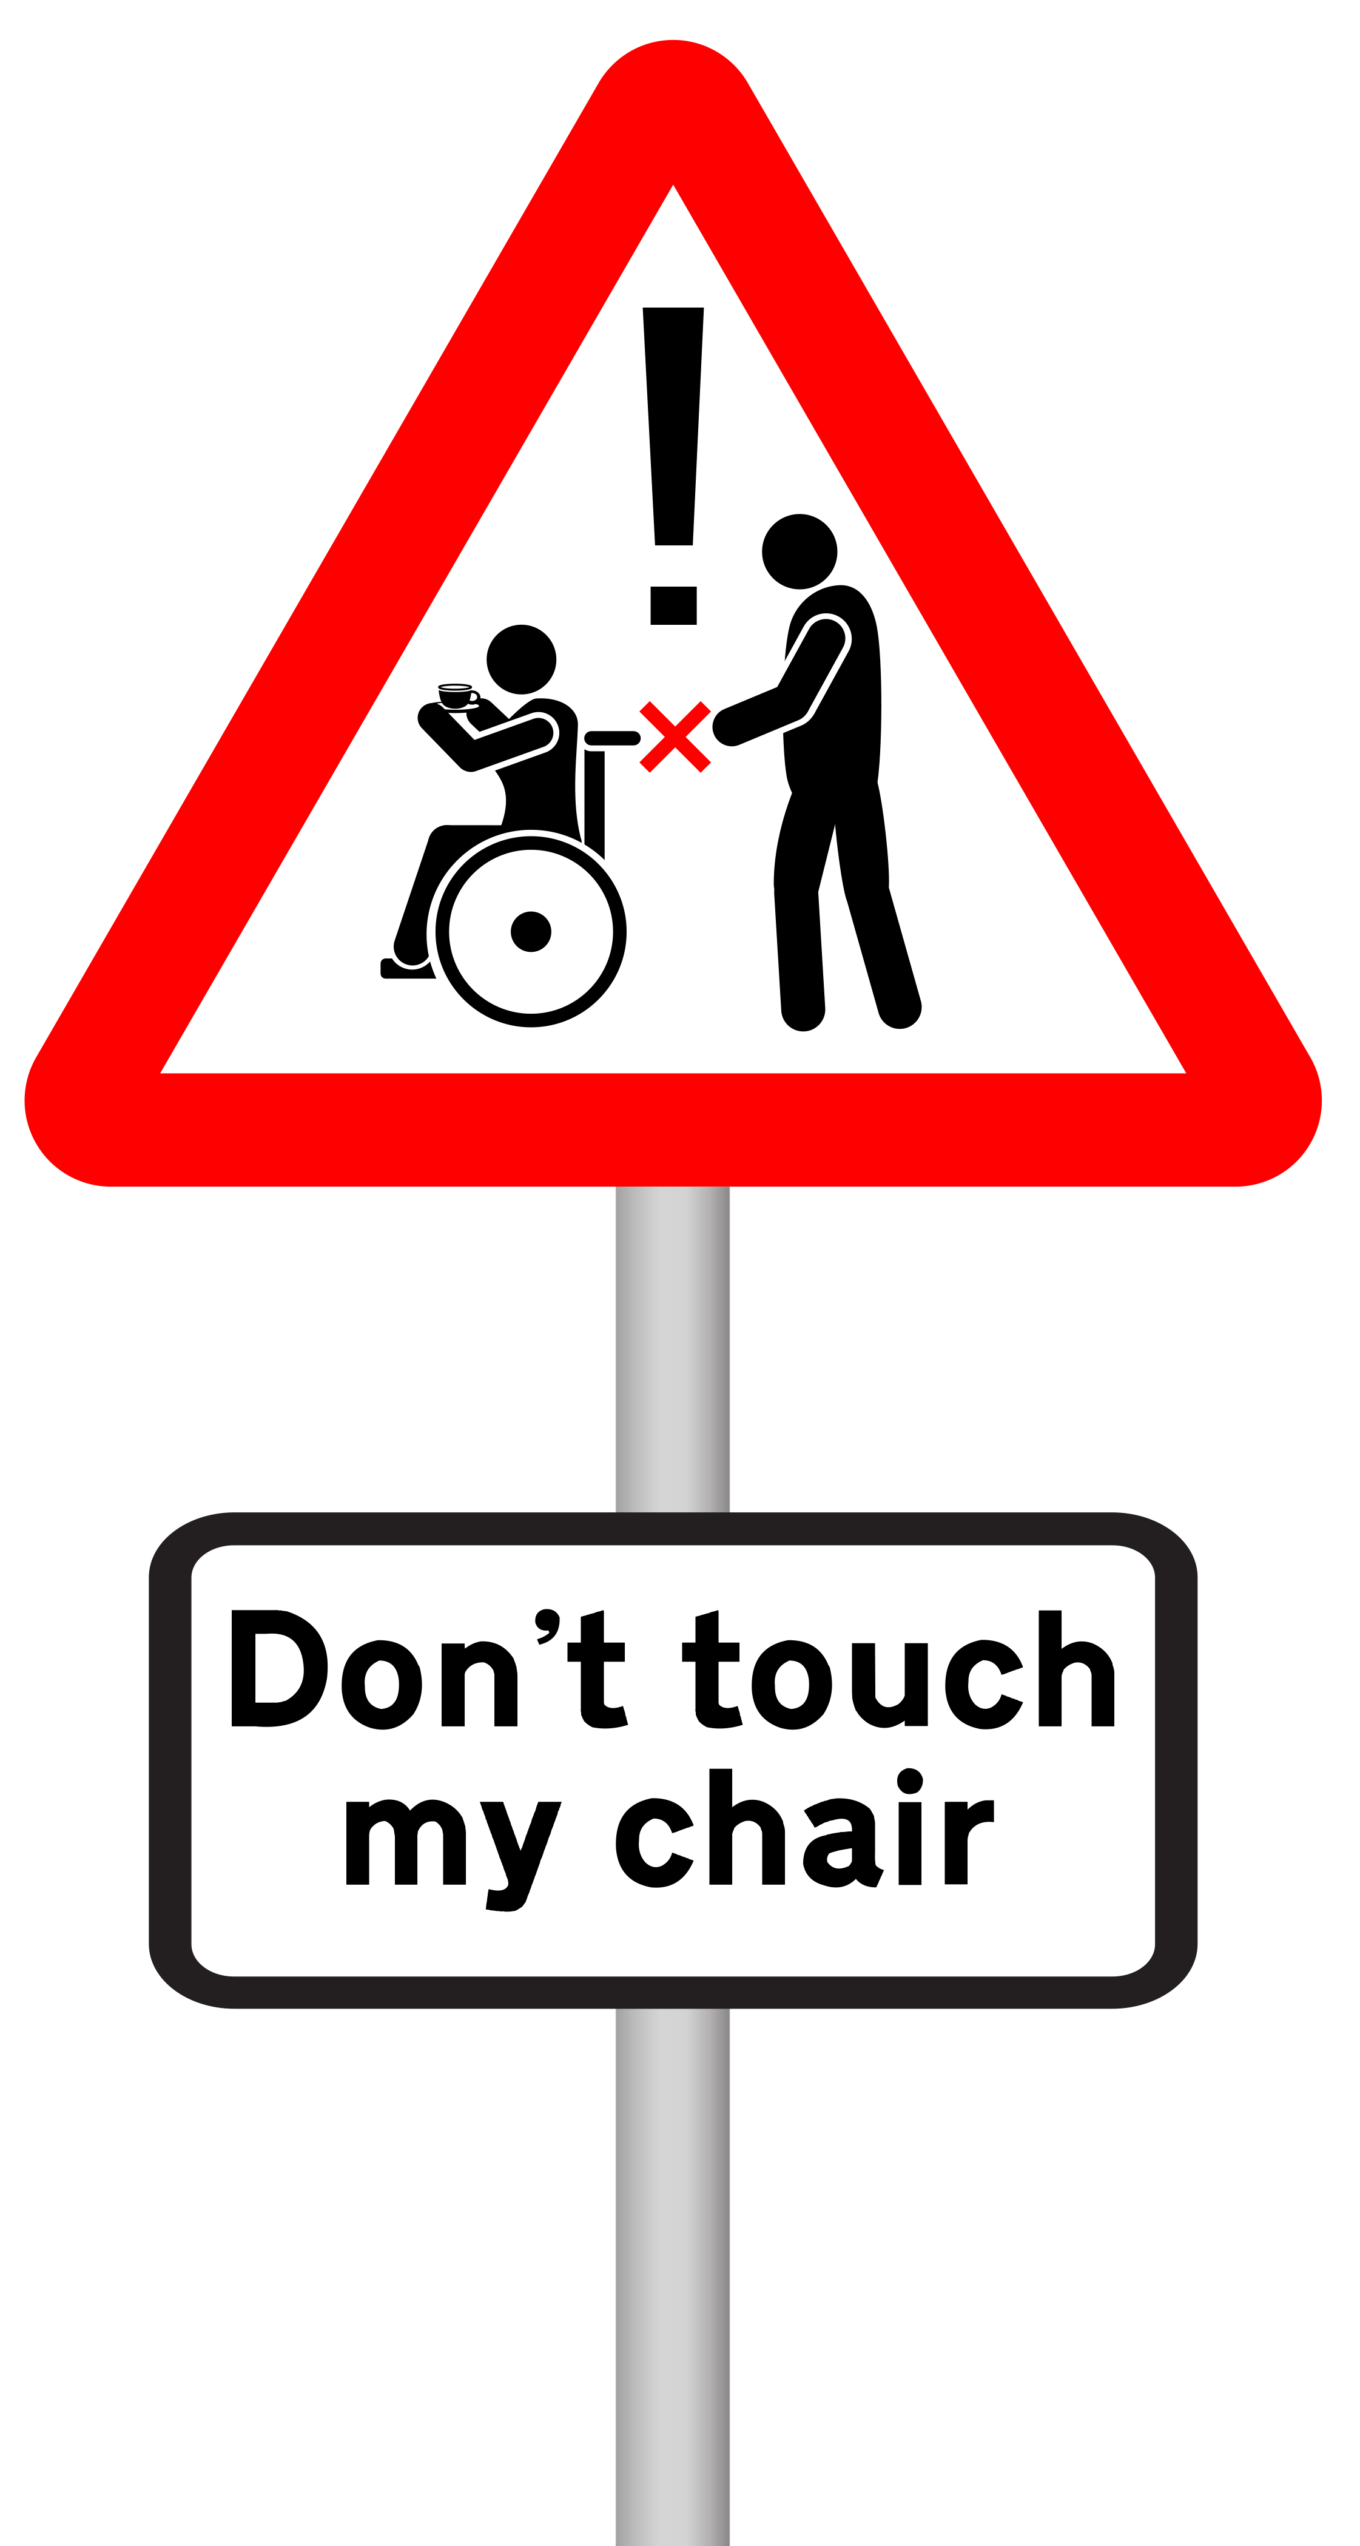 Don't touch my chair